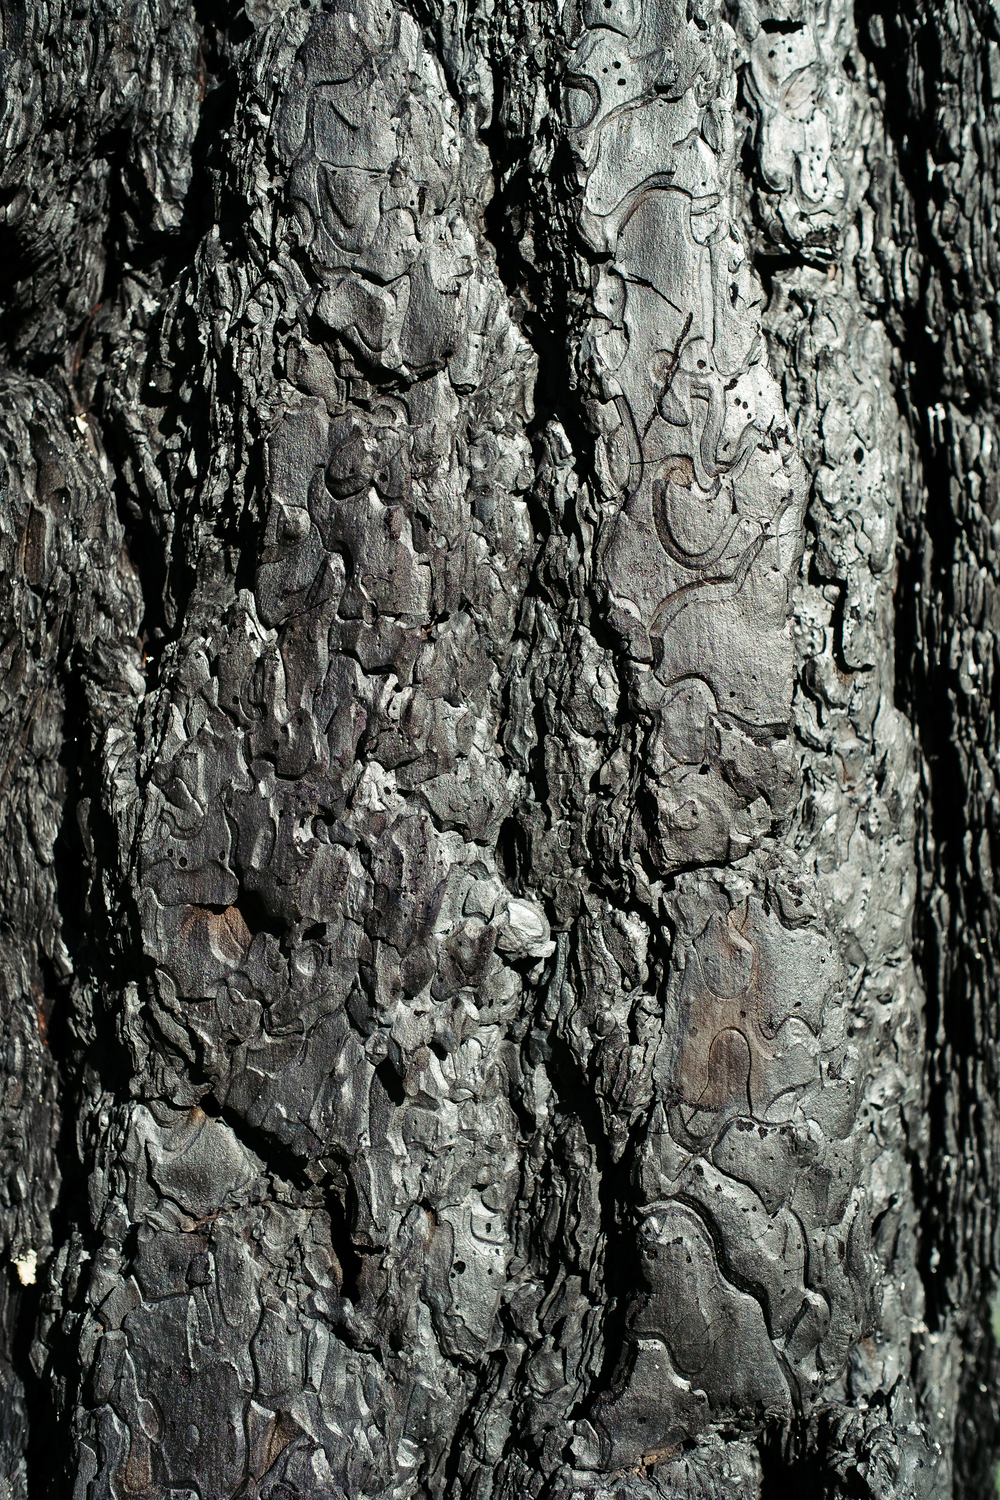 Burned Bark.